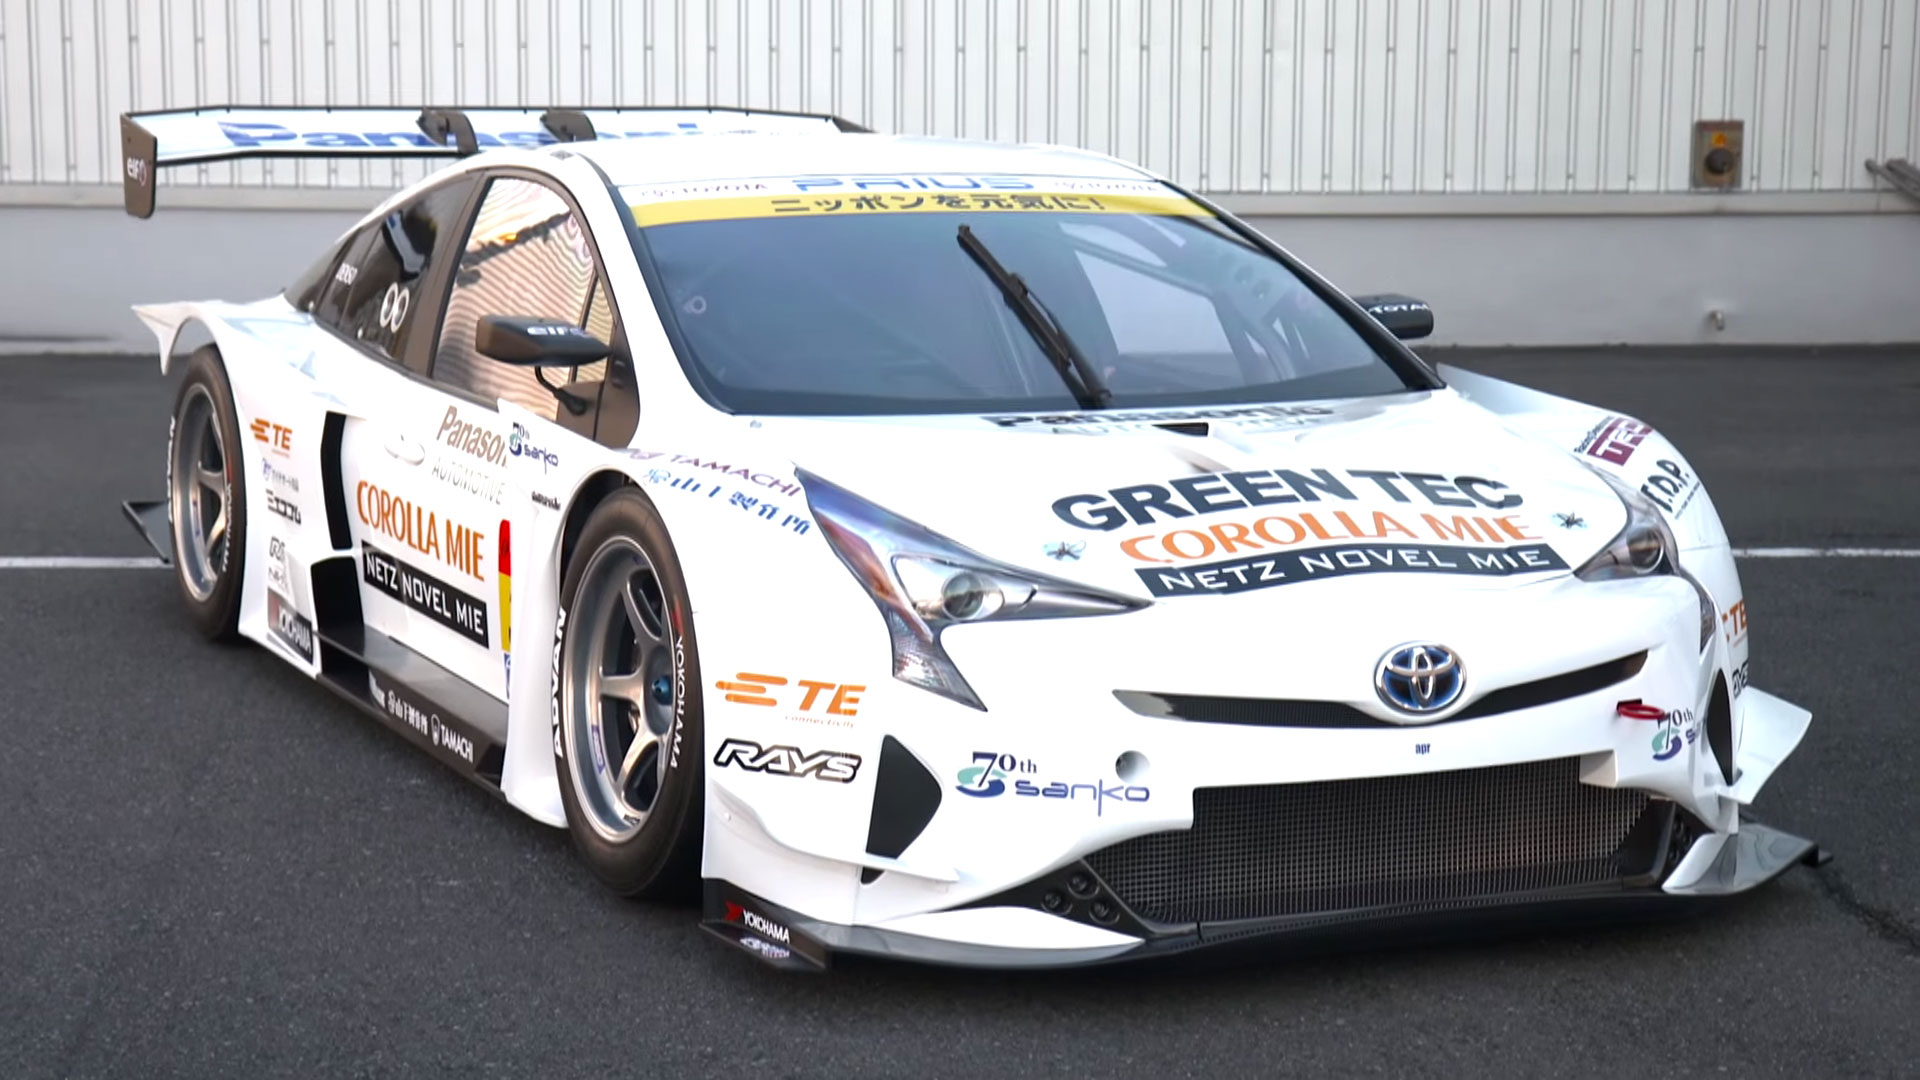 rc drift electric with 2016 Toyota Prius Gt300 Racecar Debuts In Tokyo As Otherworldly As Expected Video 103700 on Best Redcat Racing Rc Cars Truck together with 17546 as well Pro334800 Tra36054 likewise Nboatplanfree blogspot also 1596012125.